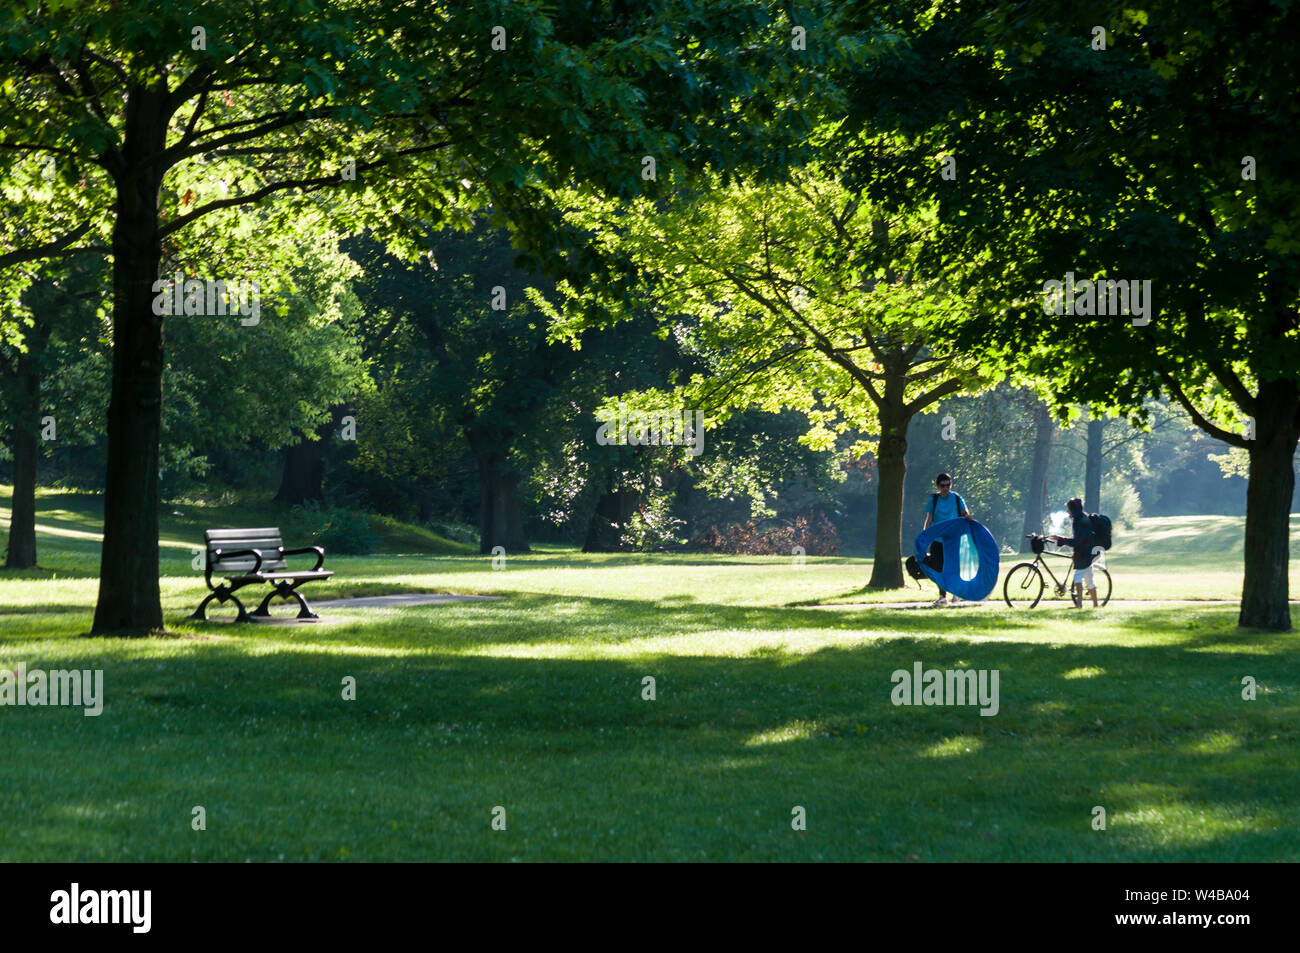 A Young Man With Camping Gear And A Young Woman With A Bike In A Park Early In The Morning Canada Ideal Setting For Meditation Jogging Or A Picnic Stock Photo